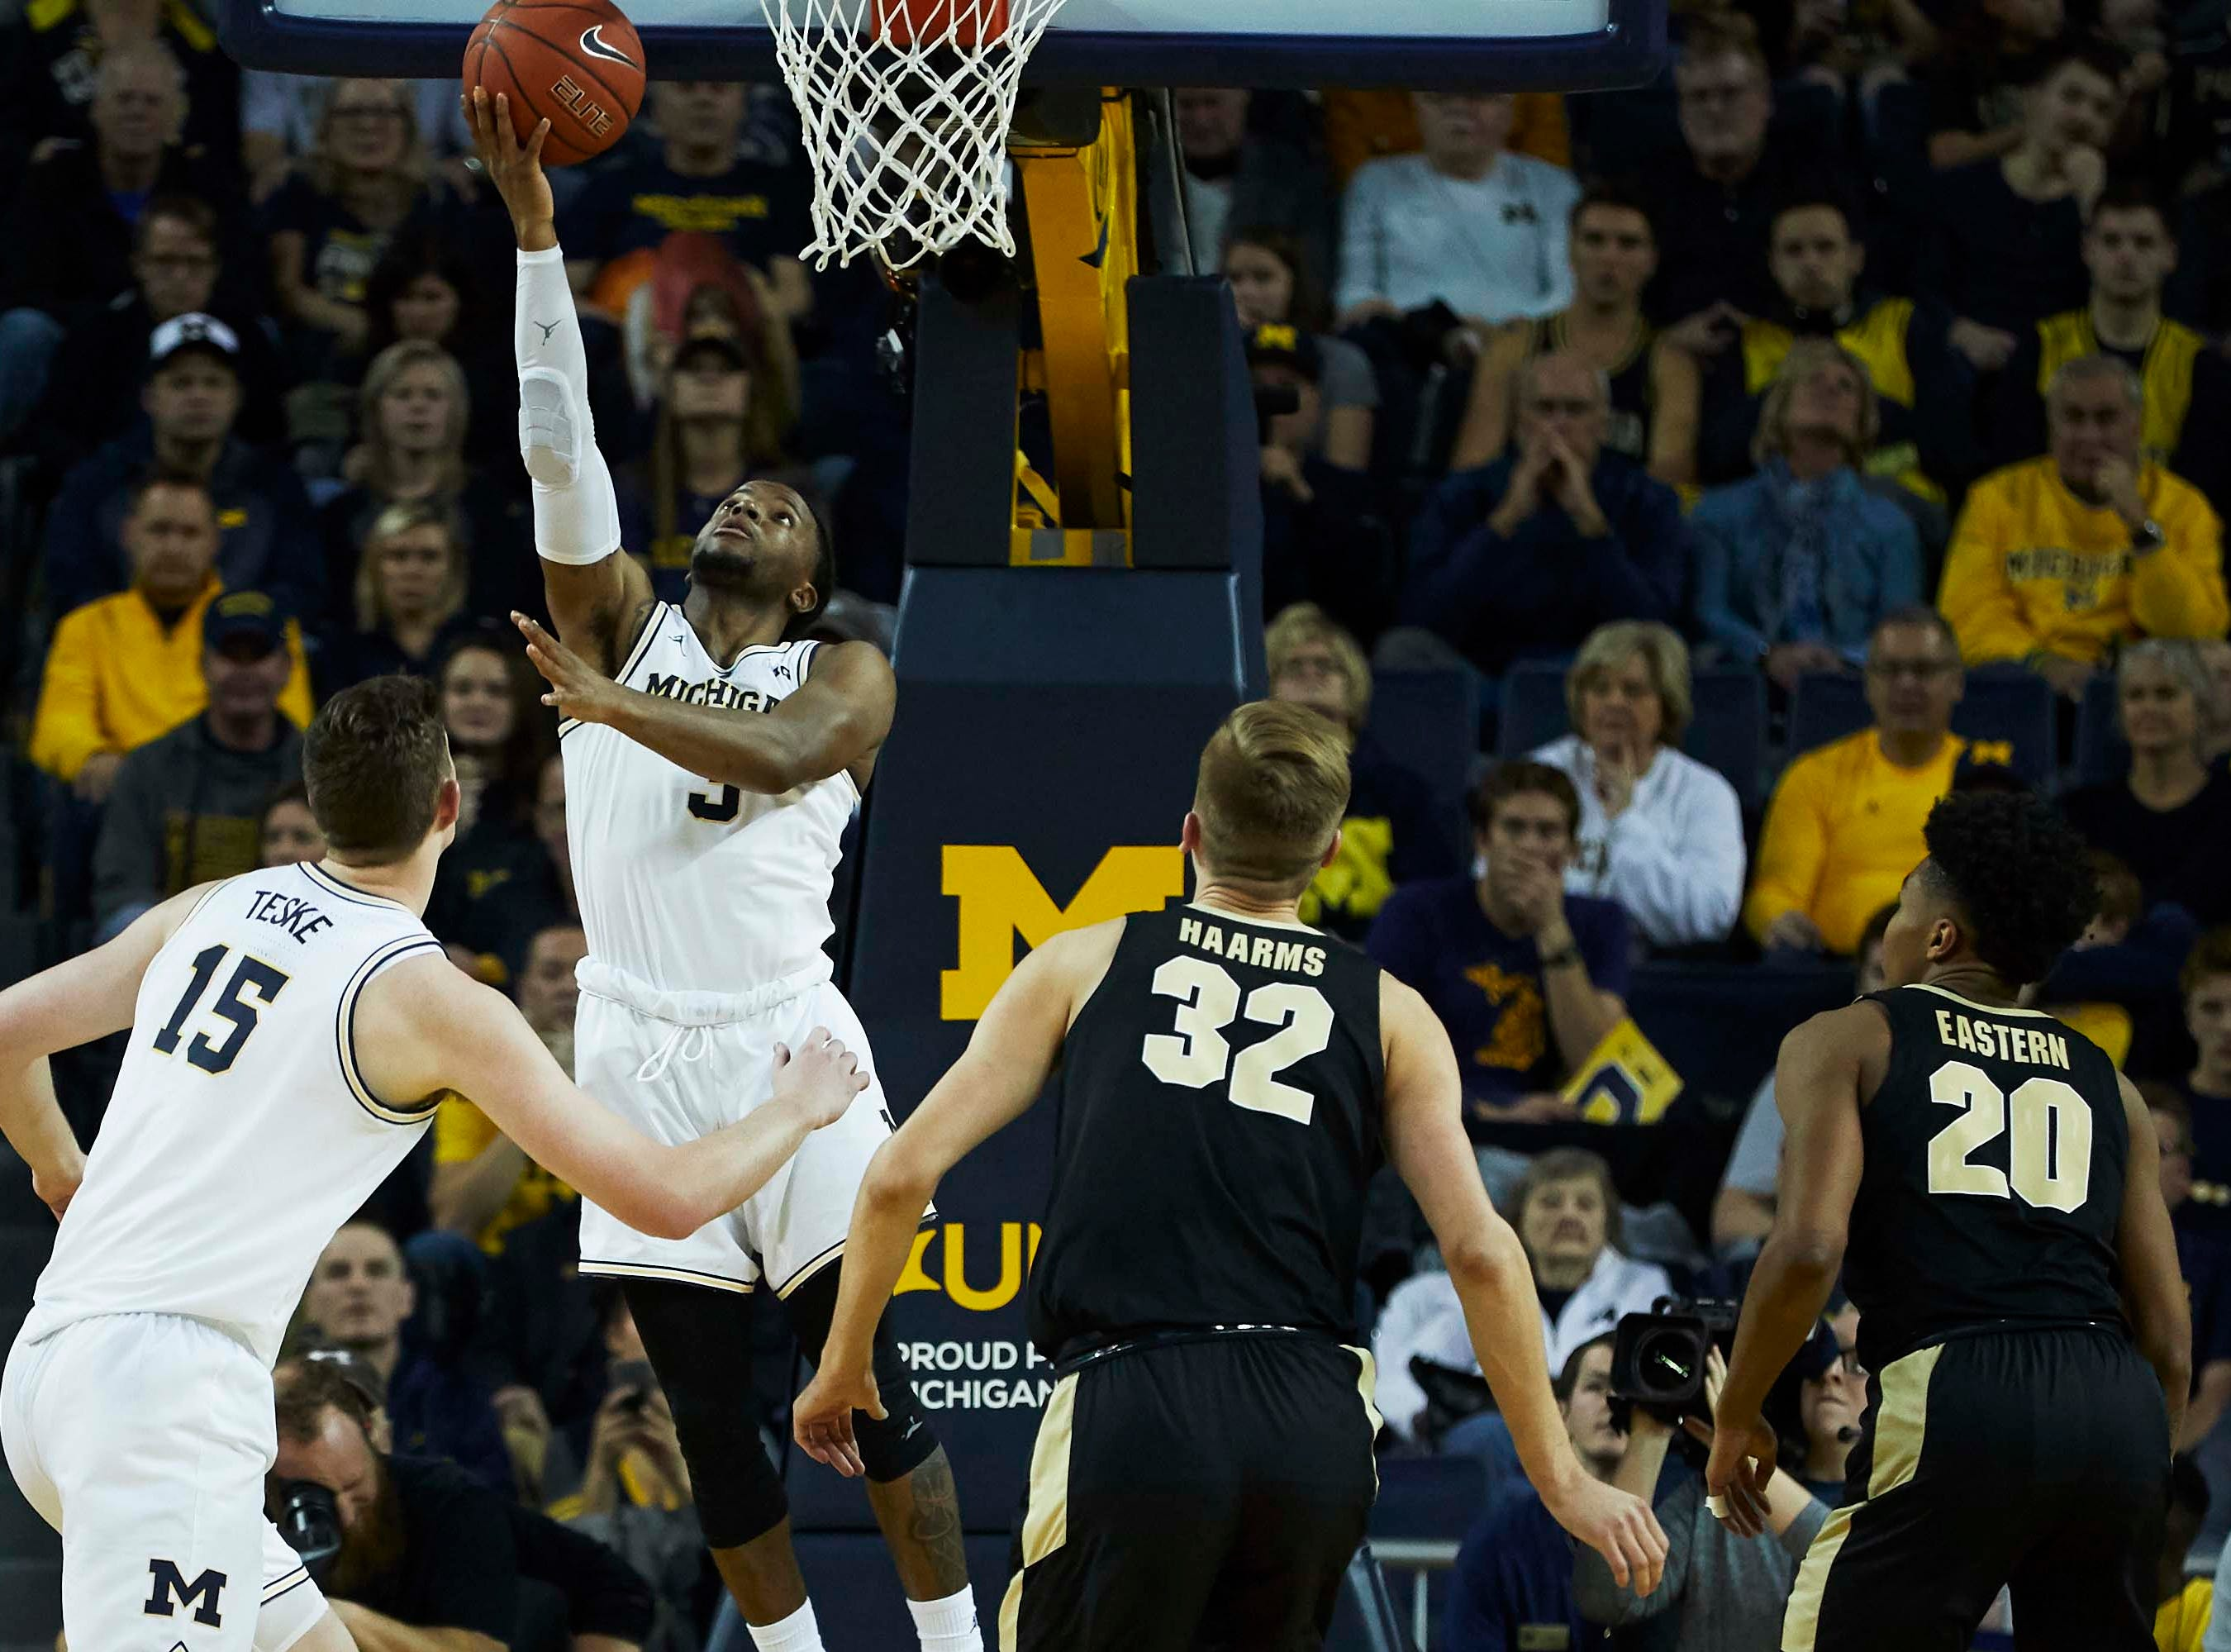 Dec 1, 2018; Ann Arbor, MI, USA; Michigan Wolverines guard Zavier Simpson (3) shoots in the second half against the Purdue Boilermakers at Crisler Center. Mandatory Credit: Rick Osentoski-USA TODAY Sports